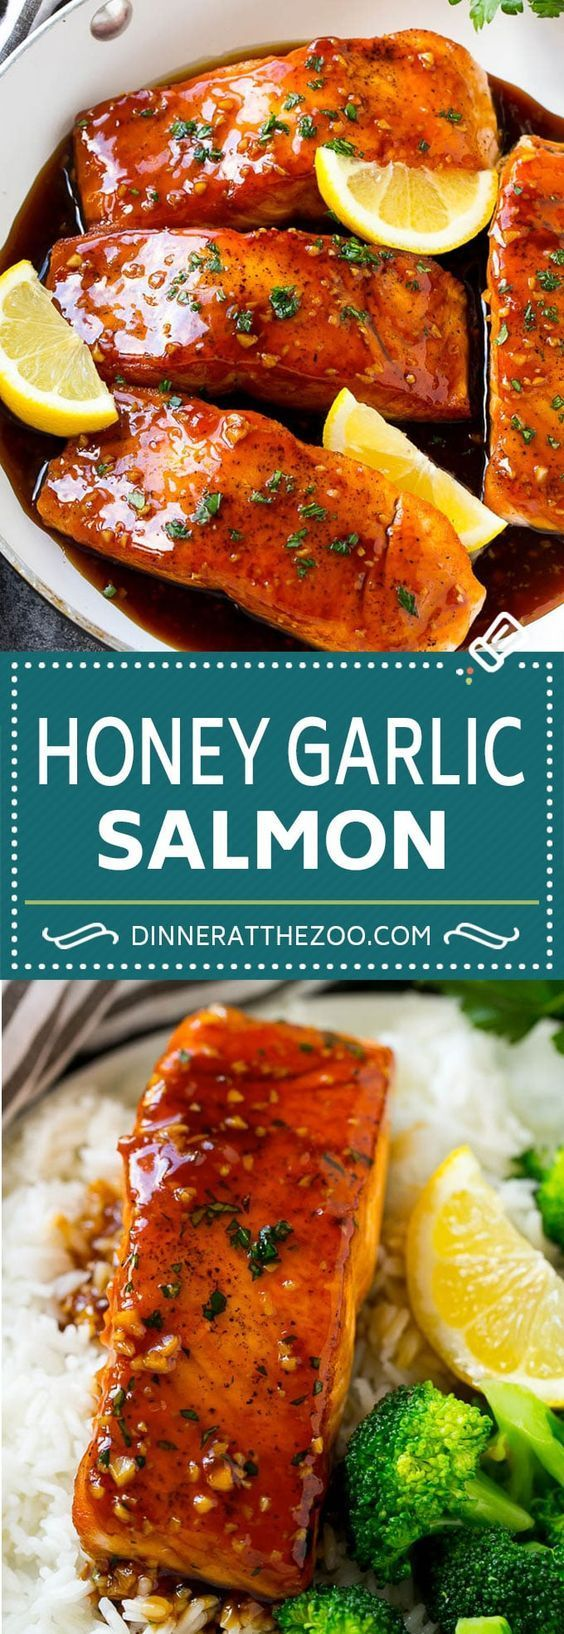 9 best Fish images on Pinterest   Asian recipes, Chinese cuisine and ...